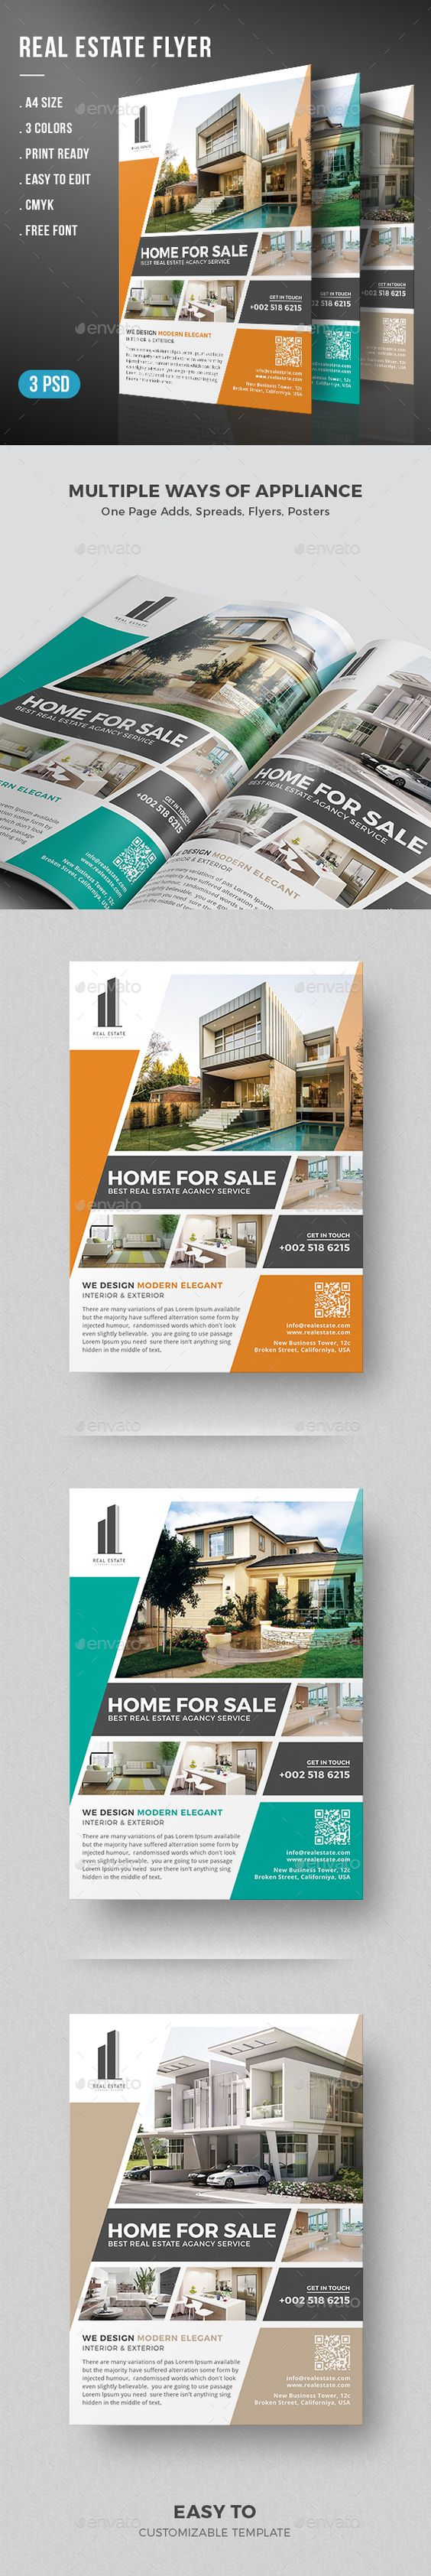 real estate flyer ad design design templates and estate agents real estate flyer template real estate magazine ad design template real estate flyer